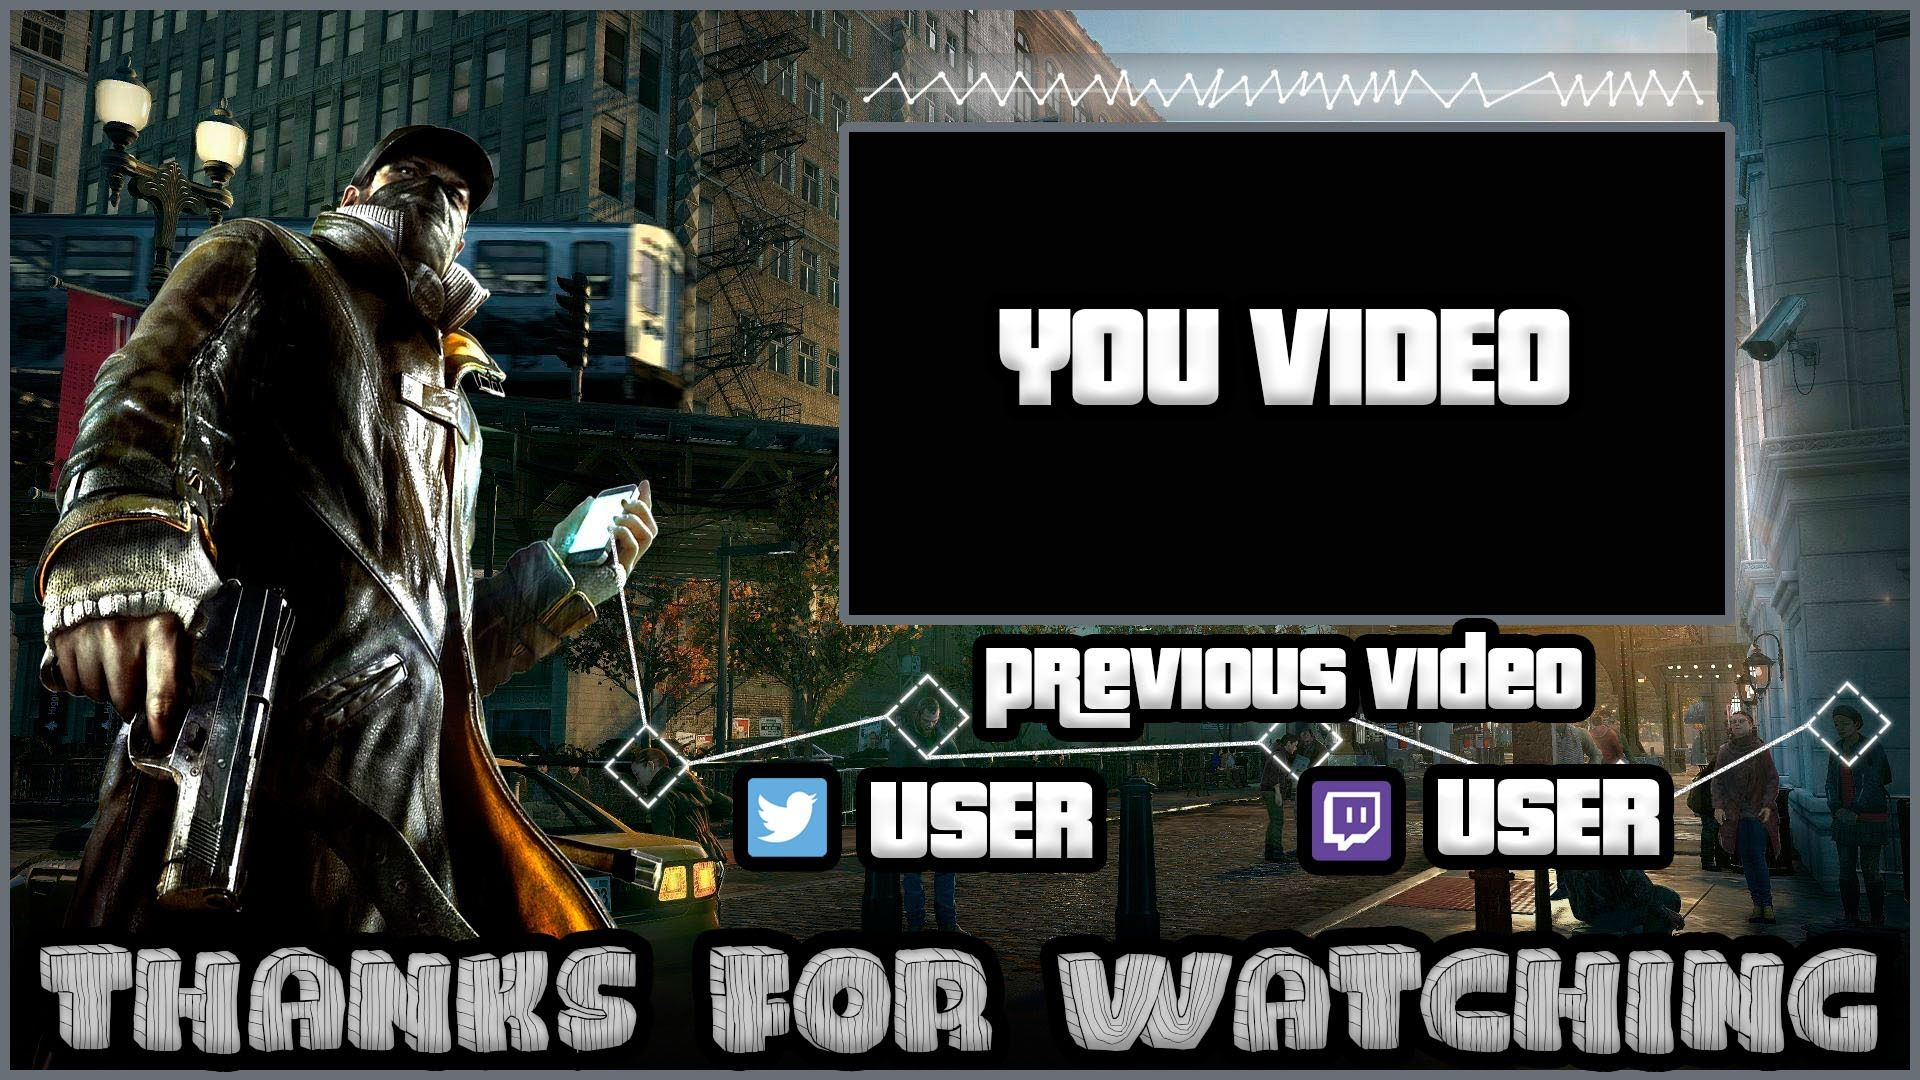 Watch dogs outro template free sony vegas pro 11 12 13 watch dogs outro template free sony vegas pro 11 12 13 maxwellsz